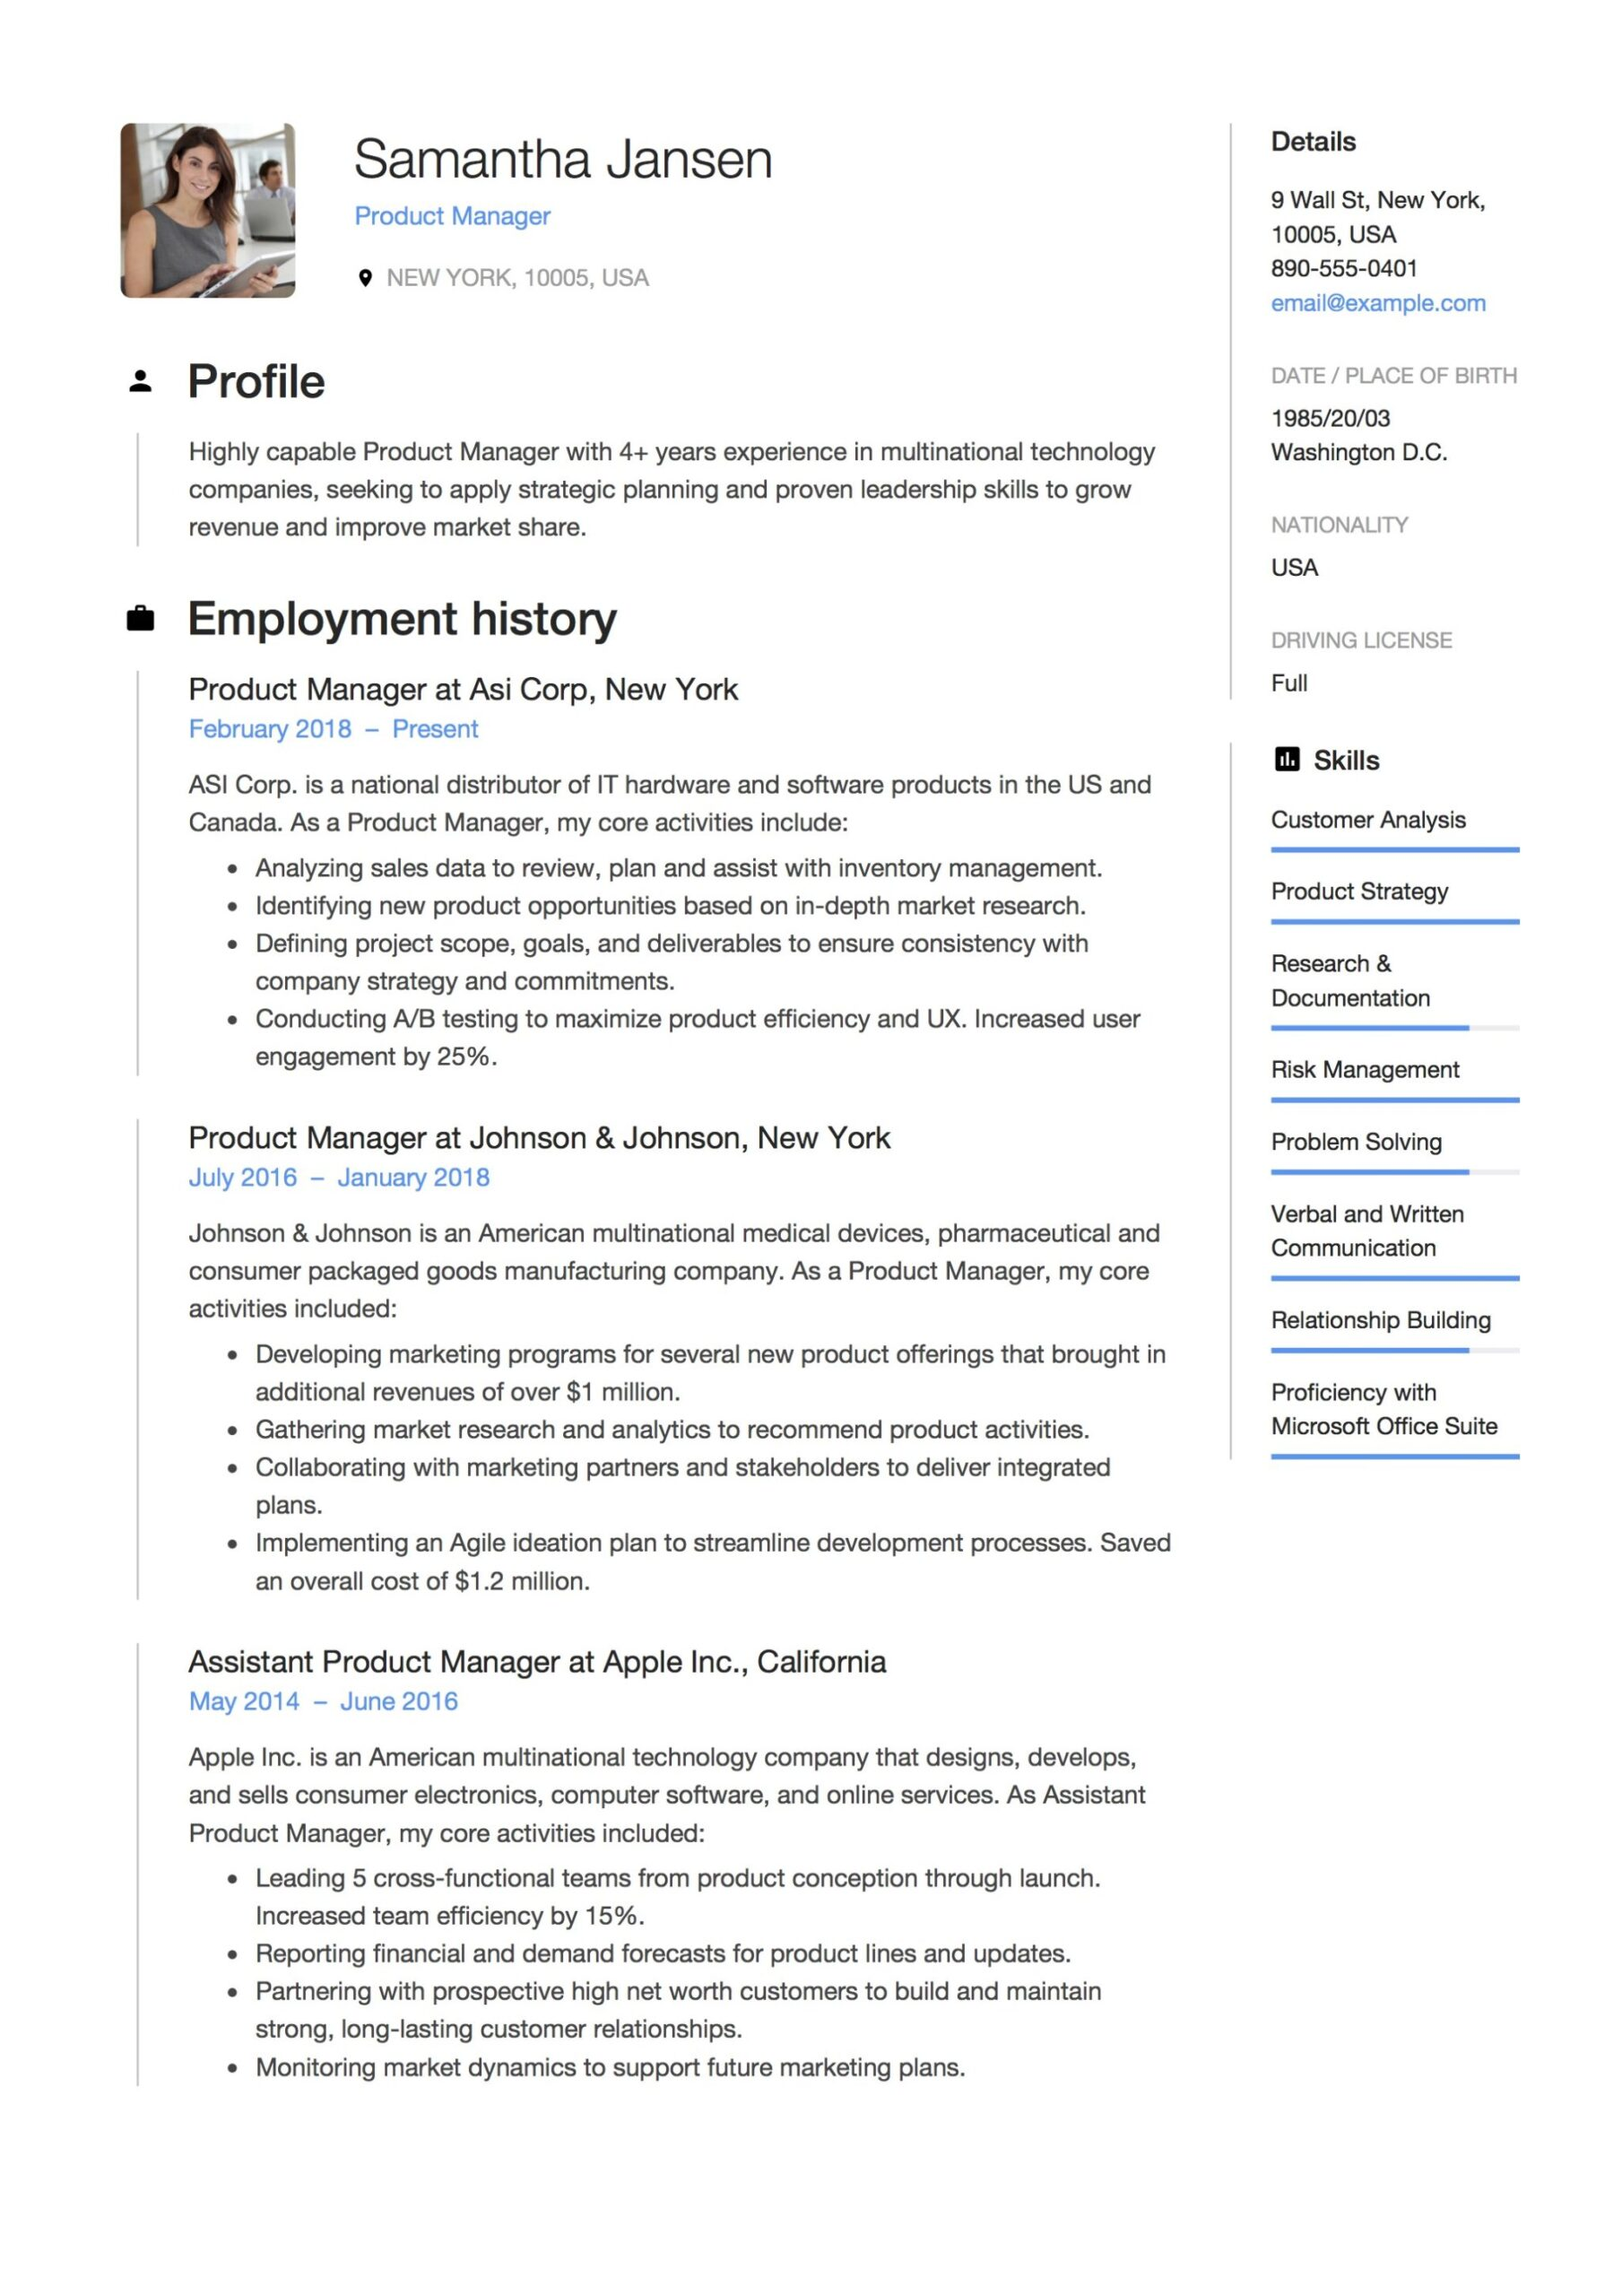 product manager resume guide samples pdf agile truck driver job shortlisted email format Resume Agile Product Manager Resume